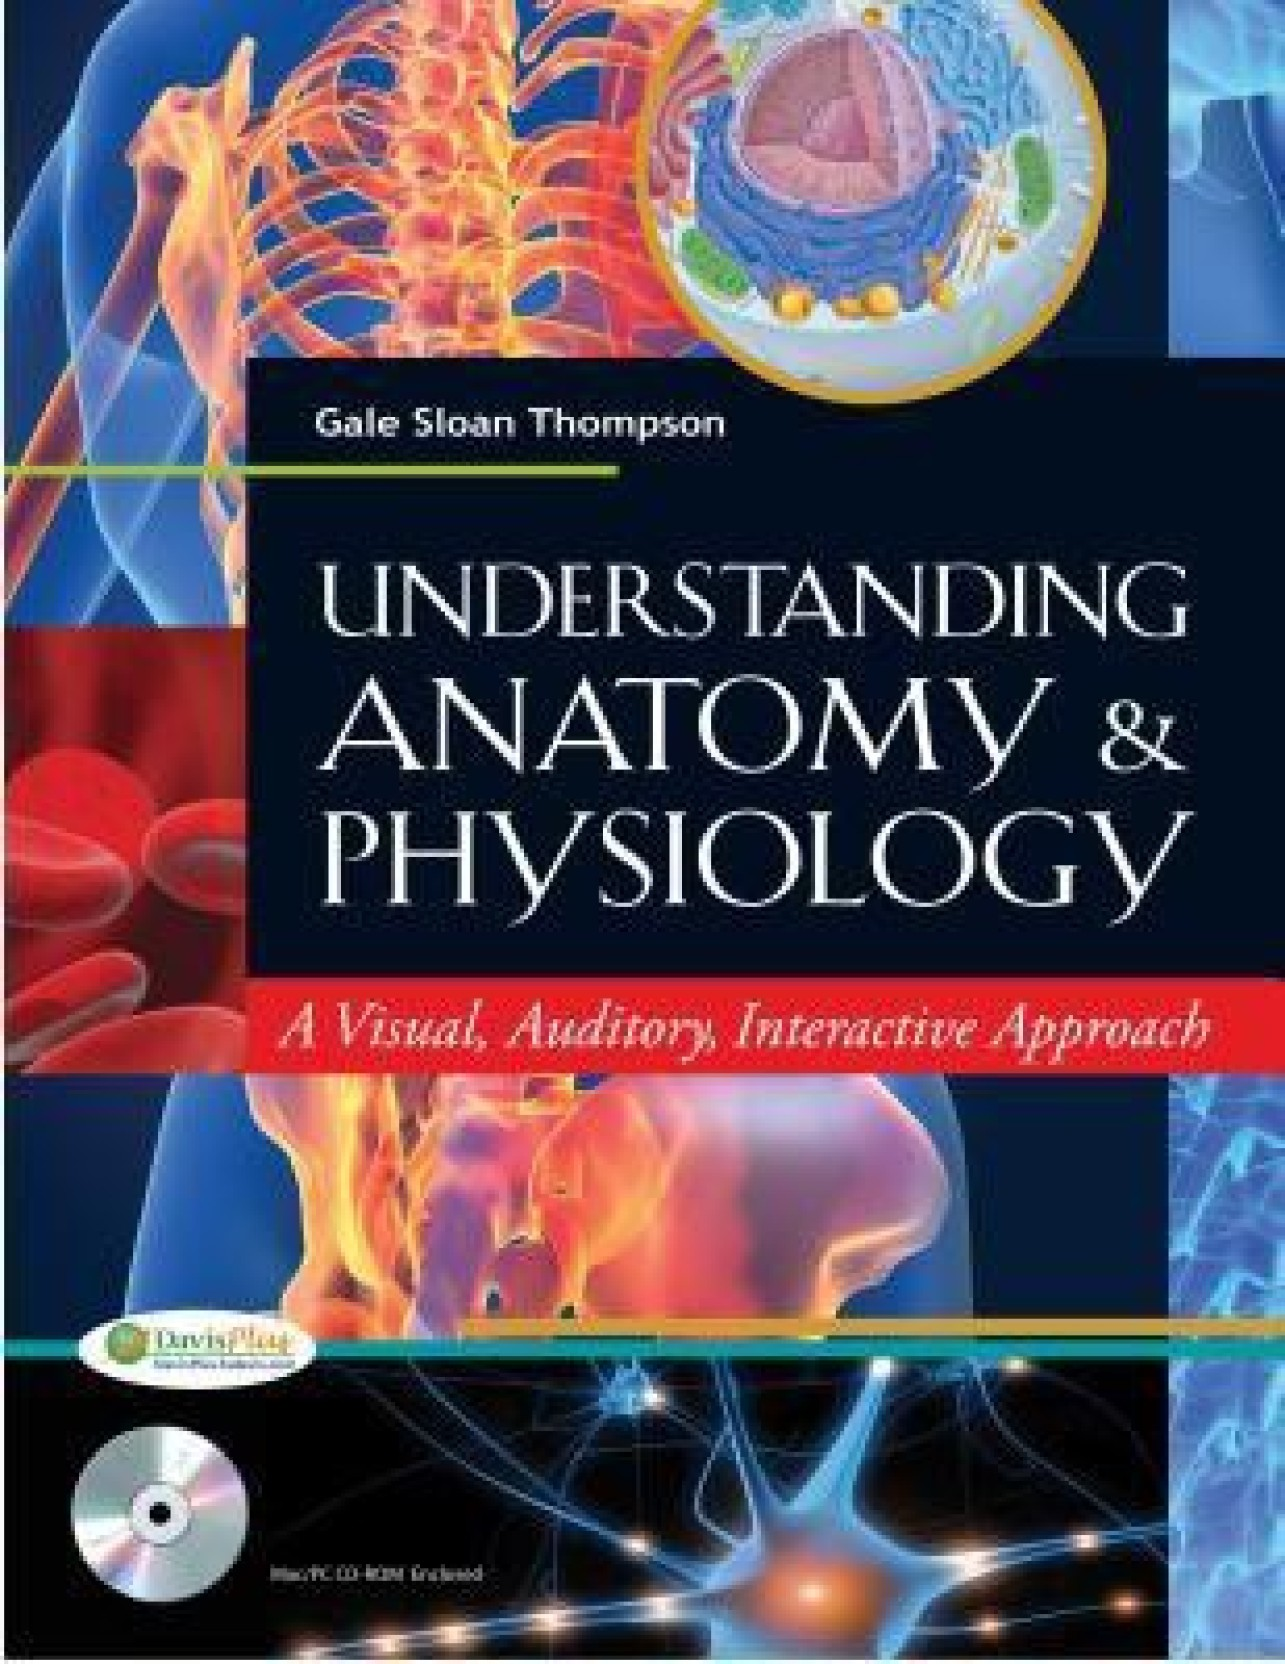 Understanding Anatomy & Physiology: A Visual, Auditory, Interactive ...